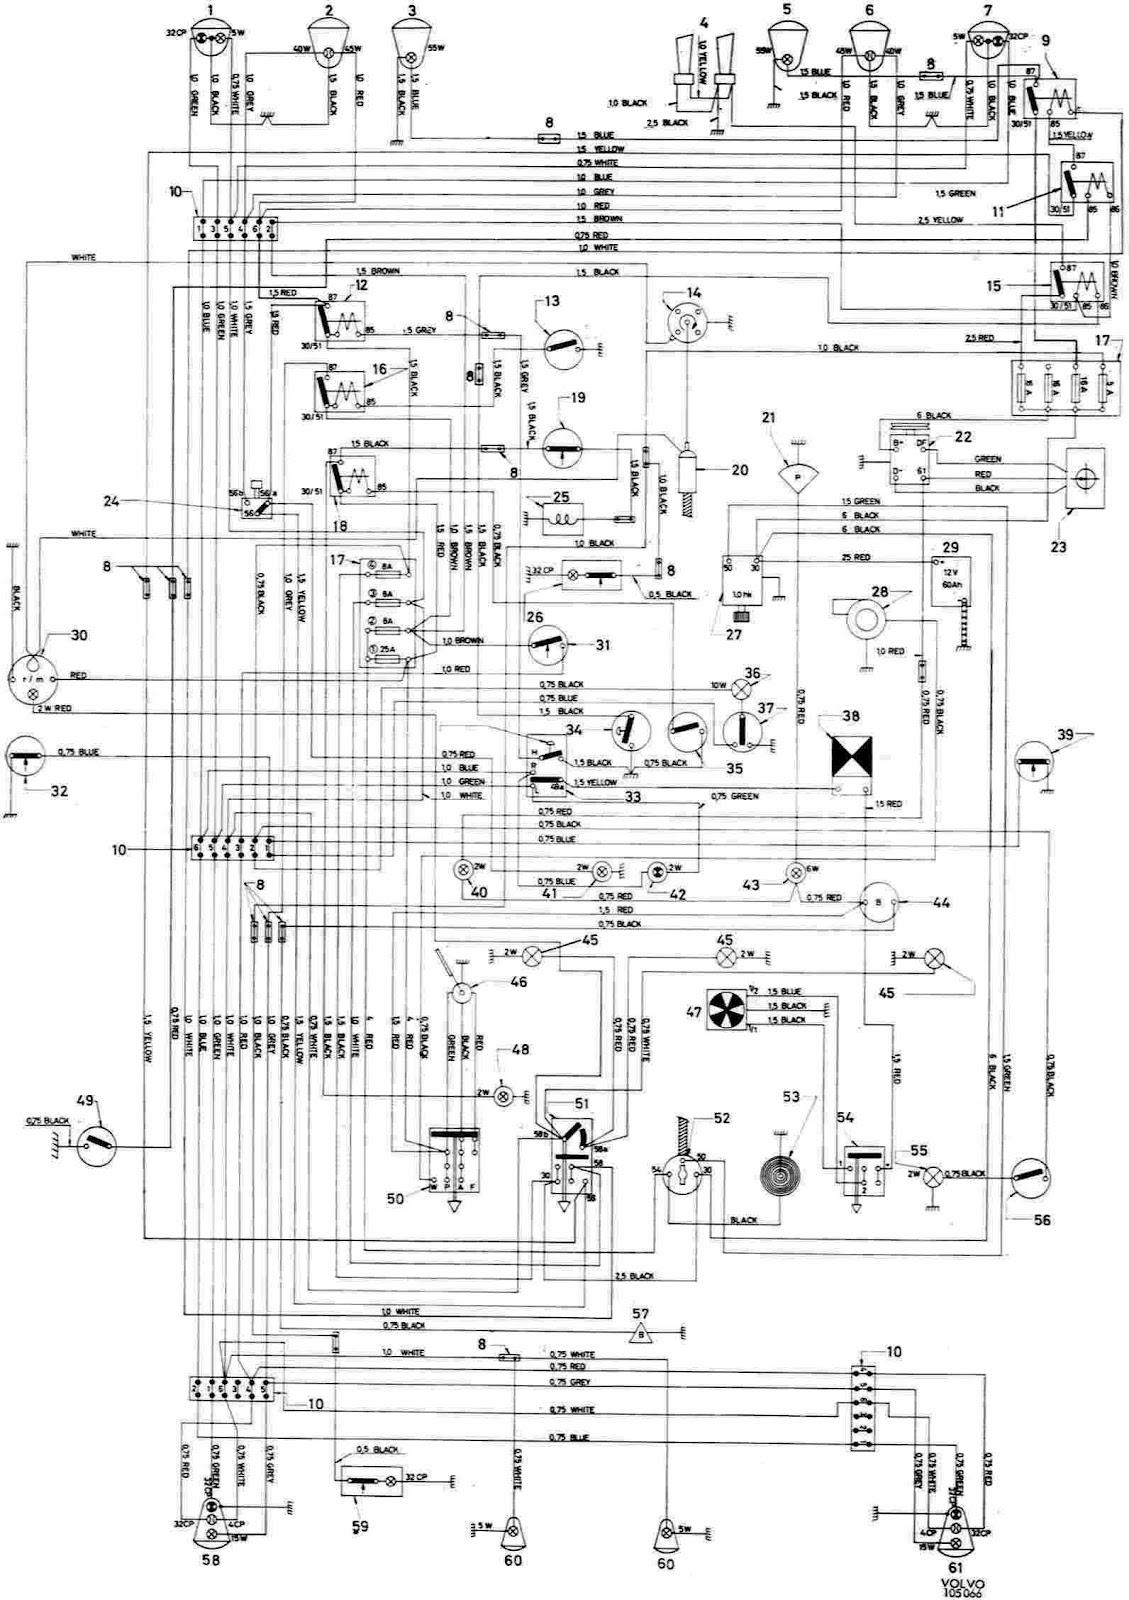 Volvo+123+GT+Complete+Wiring+Diagram 2005 volvo s40 wiring diagram volvo s40 steering diagram \u2022 wiring volvo xc90 stereo wiring diagram at gsmportal.co